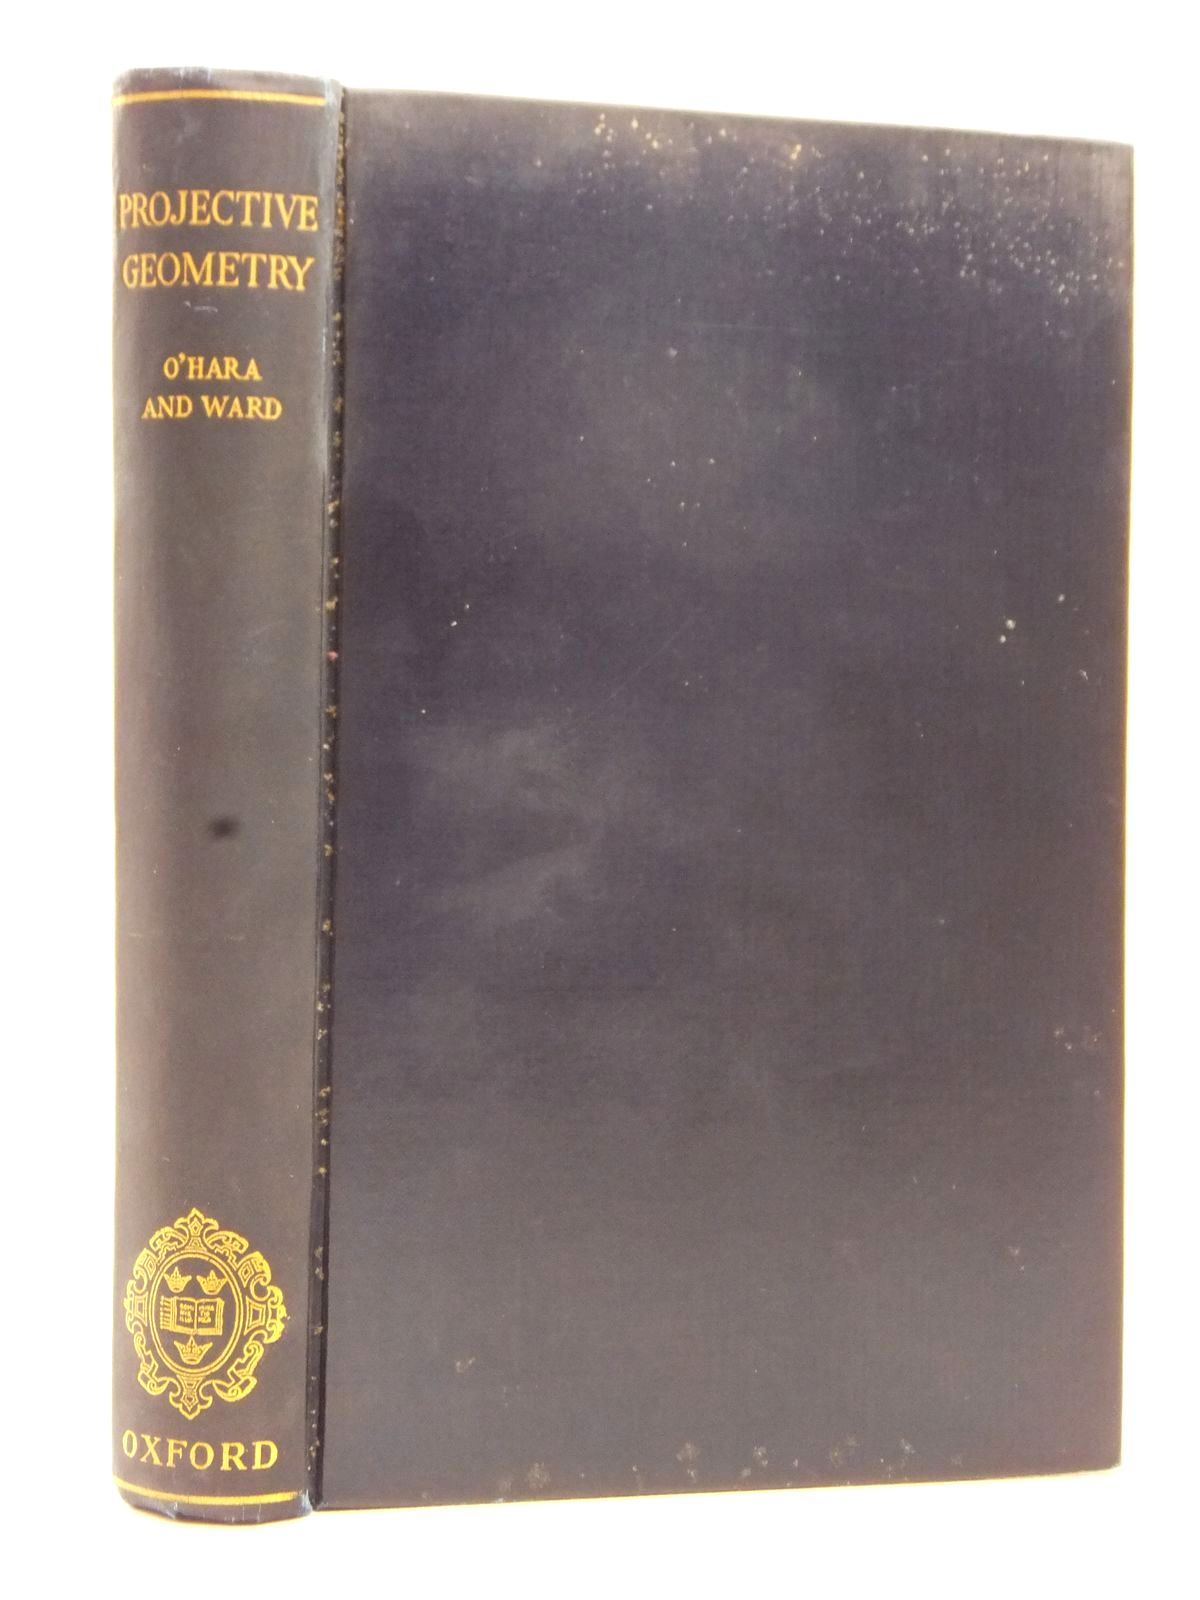 Photo of AN INTRODUCTION TO PROJECTIVE GEOMETRY written by O'Hara, C.W. Ward, D.R. published by Oxford at the Clarendon Press (STOCK CODE: 1609354)  for sale by Stella & Rose's Books